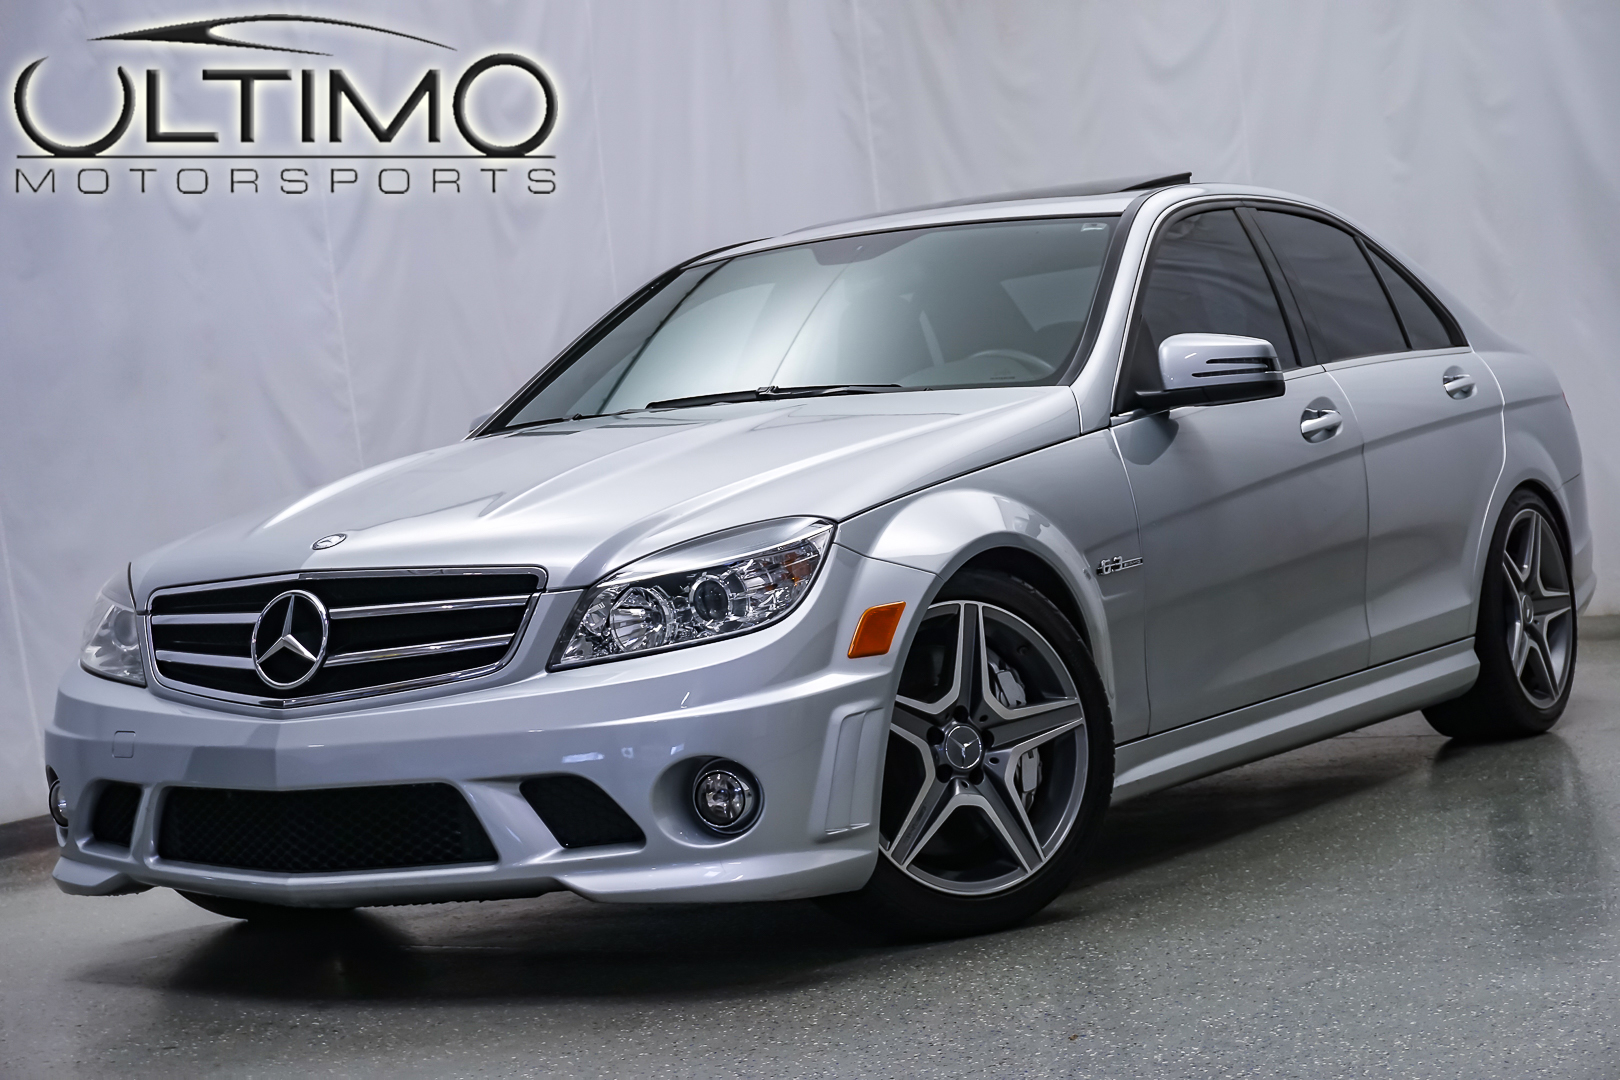 Pre owned 2004 mercedes benz e class amg sedan in for Pre owned e class mercedes benz